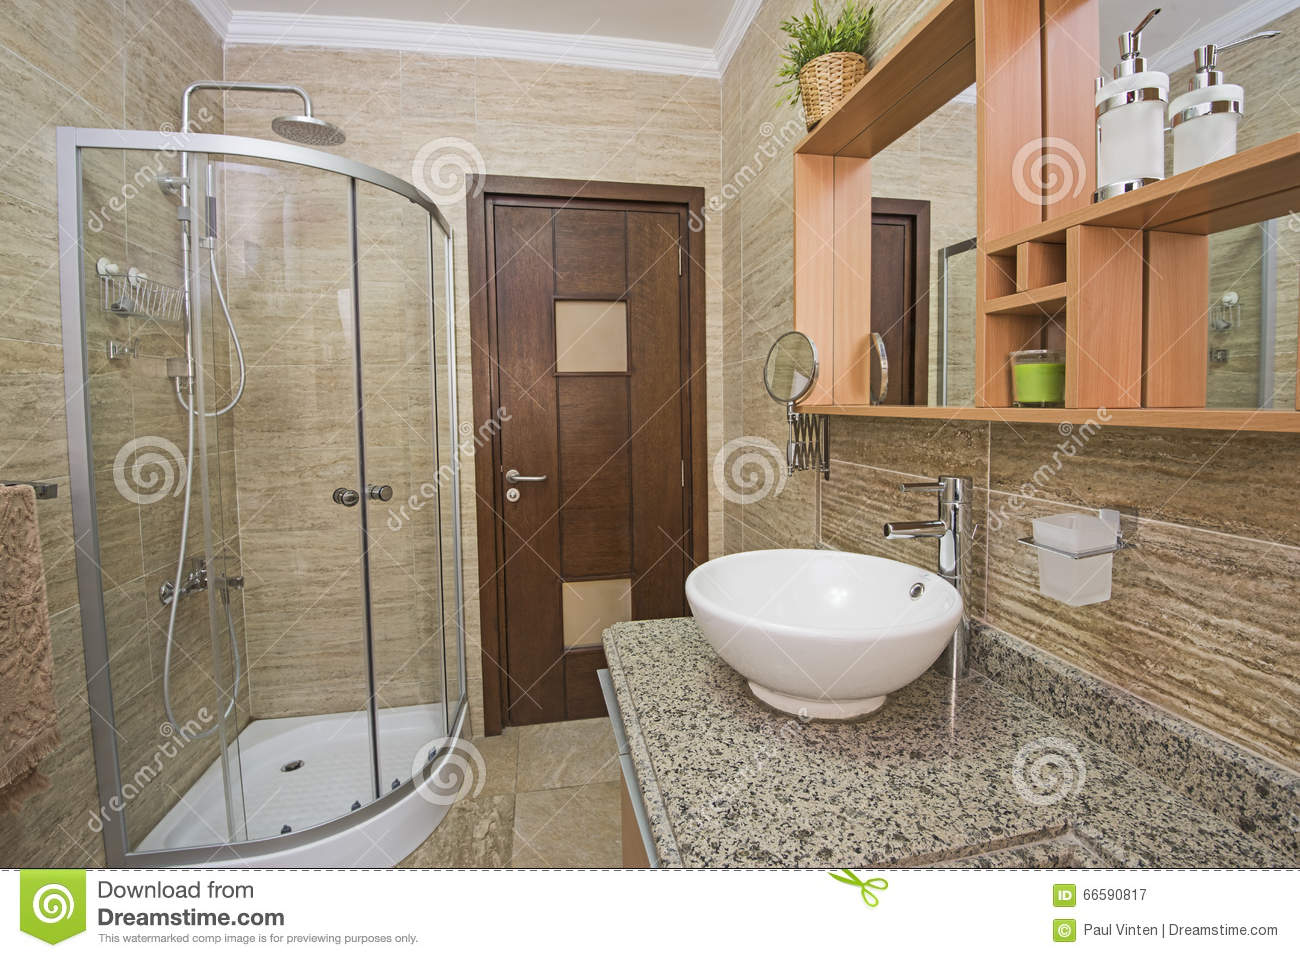 Interior Of A Luxury Show Home Bathroom Stock Image - Image of ...